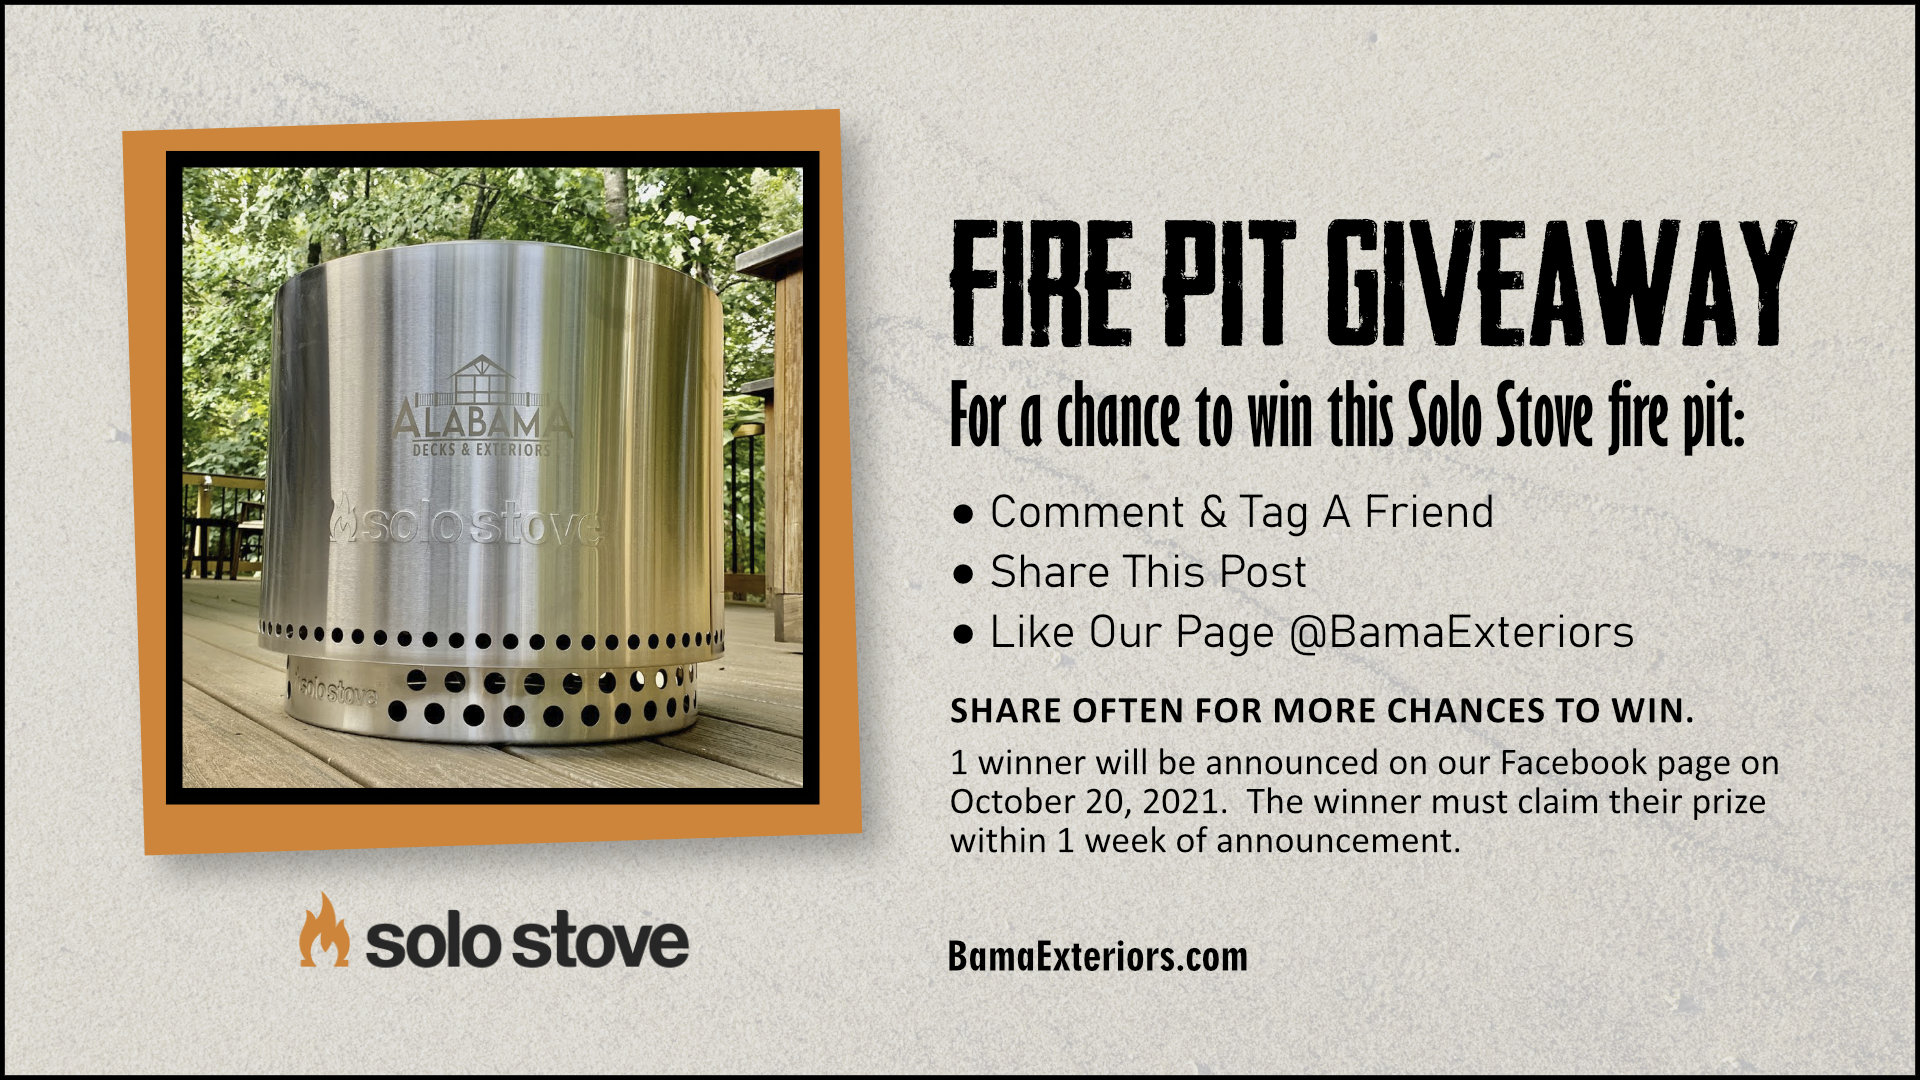 Win a FREE Solo Stove from Alabama Decks & Exteriors!